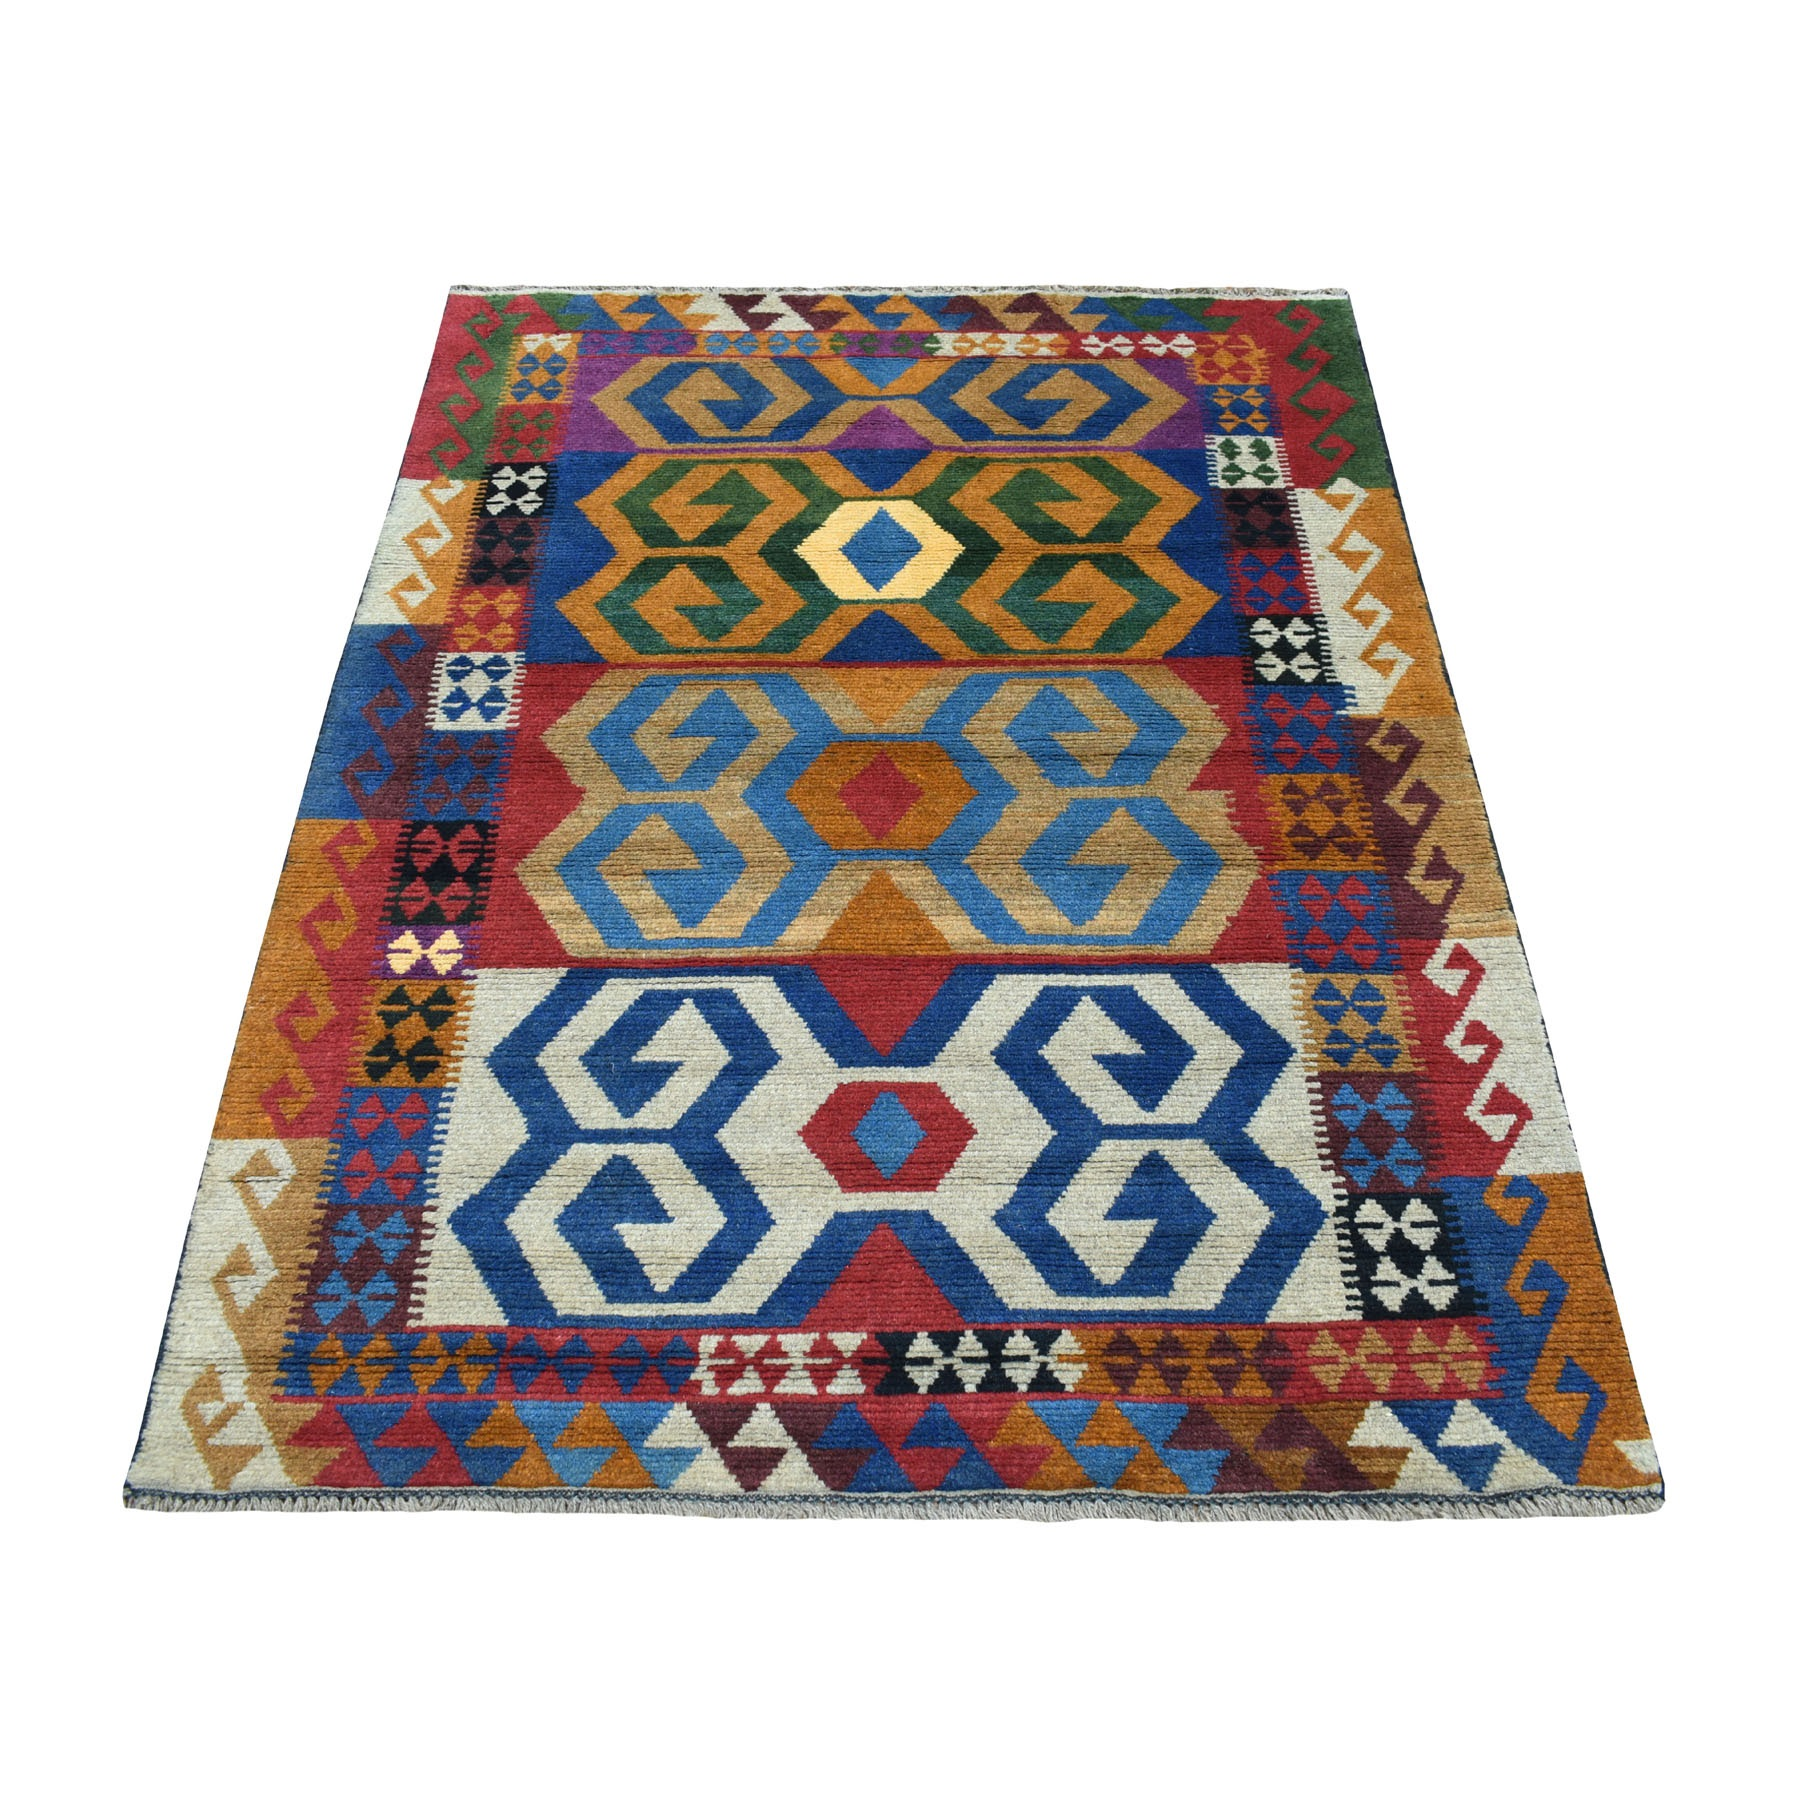 "3'10""x5'6"" Orange Colorful Afghan Baluch Geometric Design Hand Woven Pure Wool Oriental Rug"